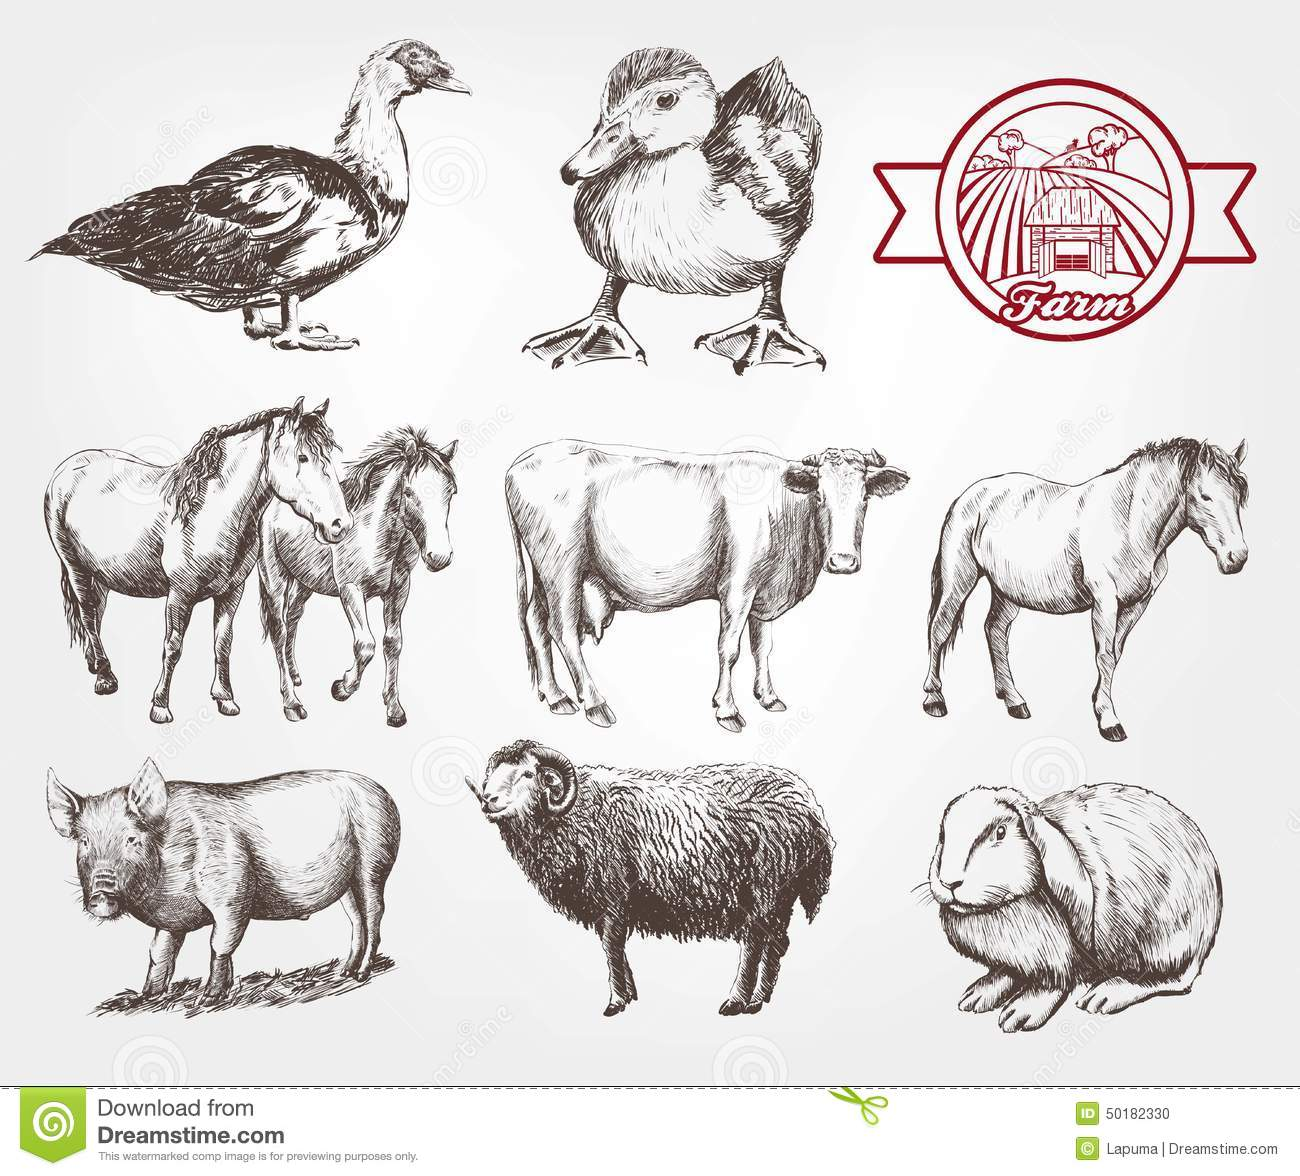 Farm Animals Stock Vector. Image Of Domestic Sheep Standing - 50182330